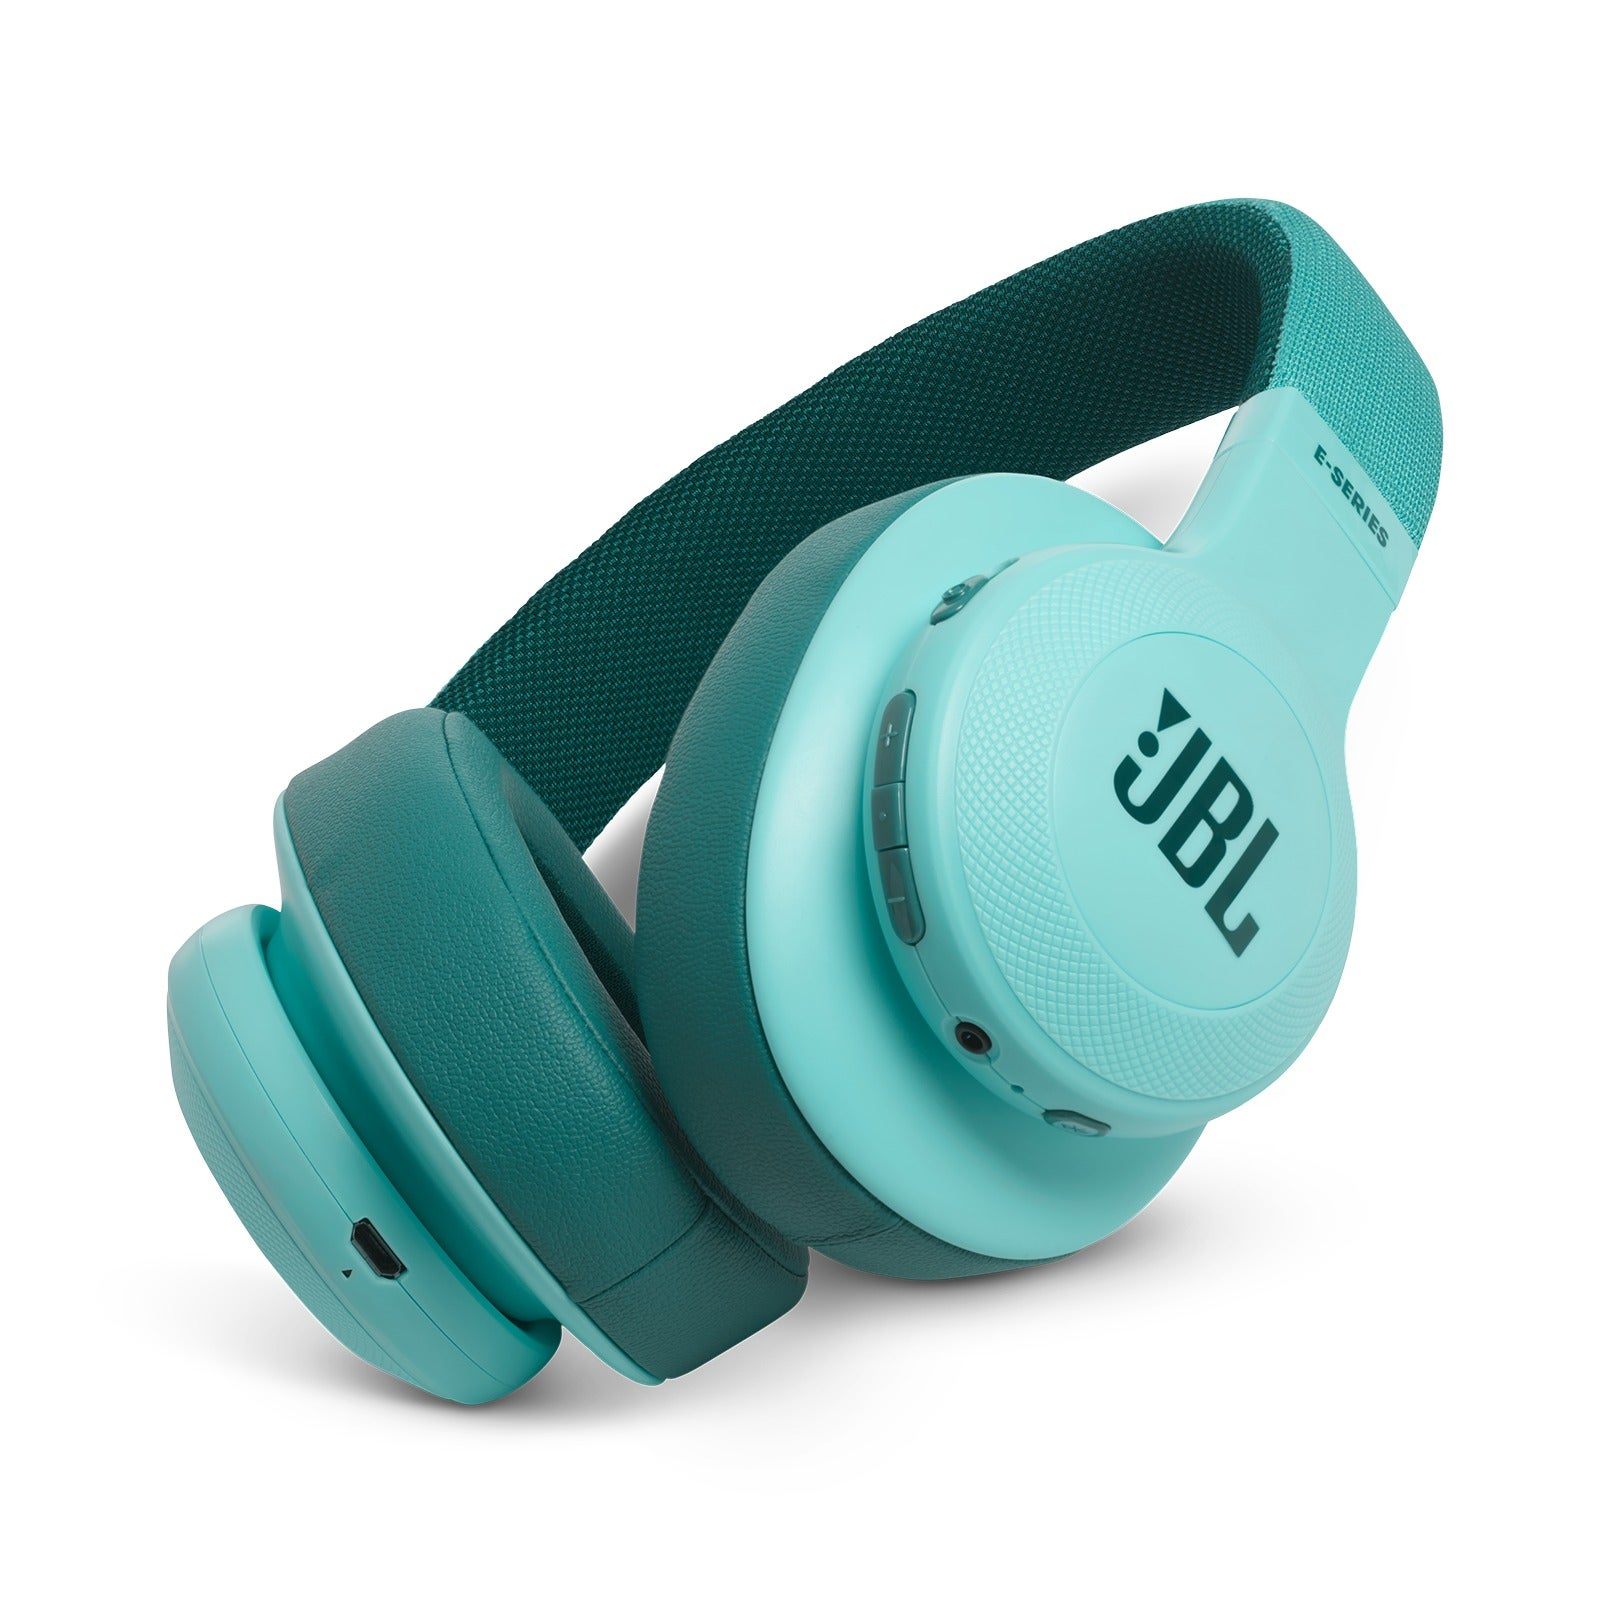 77ae6388457 JBL E55BT wireless headphone review: These modestly priced cans deliver  strong features and good sound